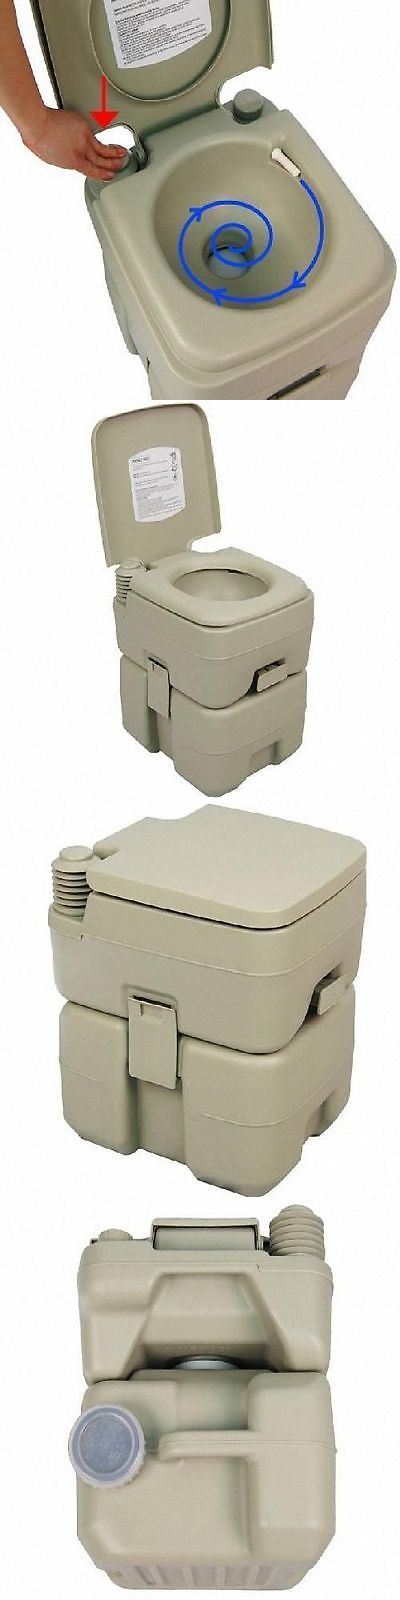 Portable Toilets and Accessories 181397: Self-Contained Portable Travel Toilet For Camp Site, Boat, Rv, Other Recreations -> BUY IT NOW ONLY: $89.06 on eBay!